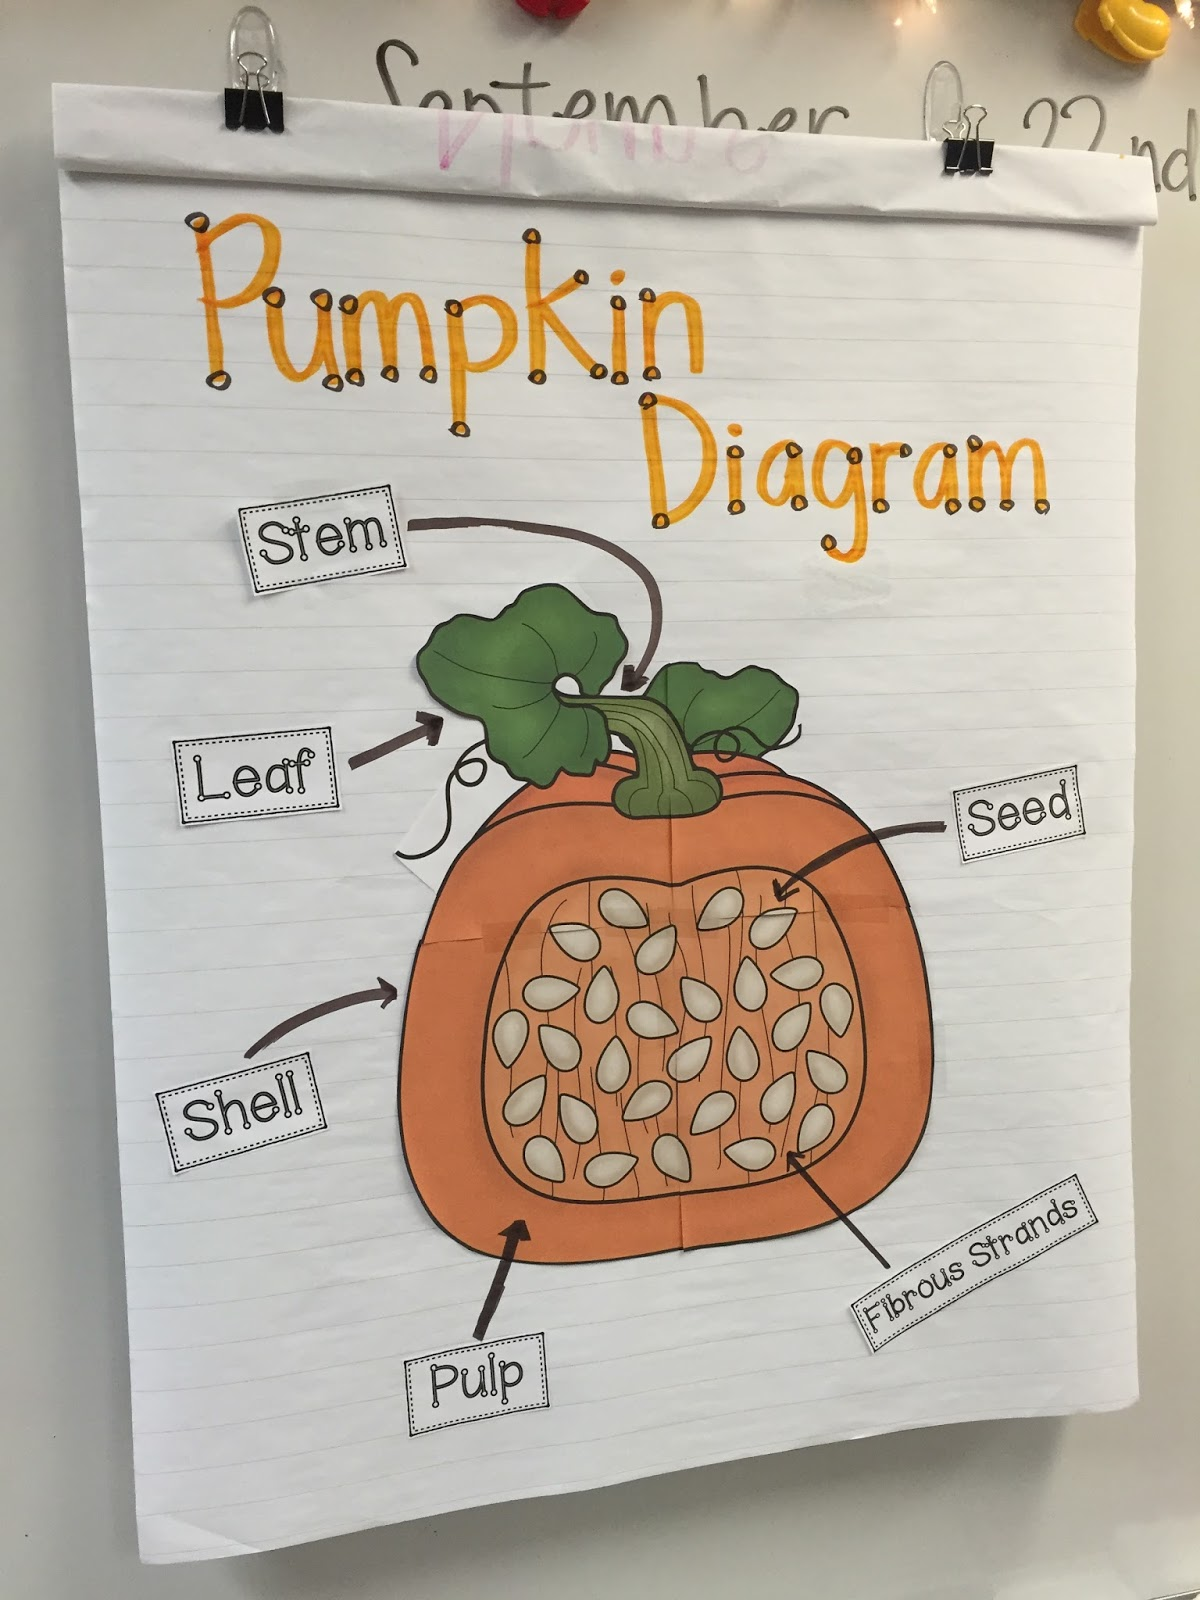 pumpkin seed diagram dyna 2000 ignition wiring going strong in 2nd grade it 39s punkin 39 day or will be